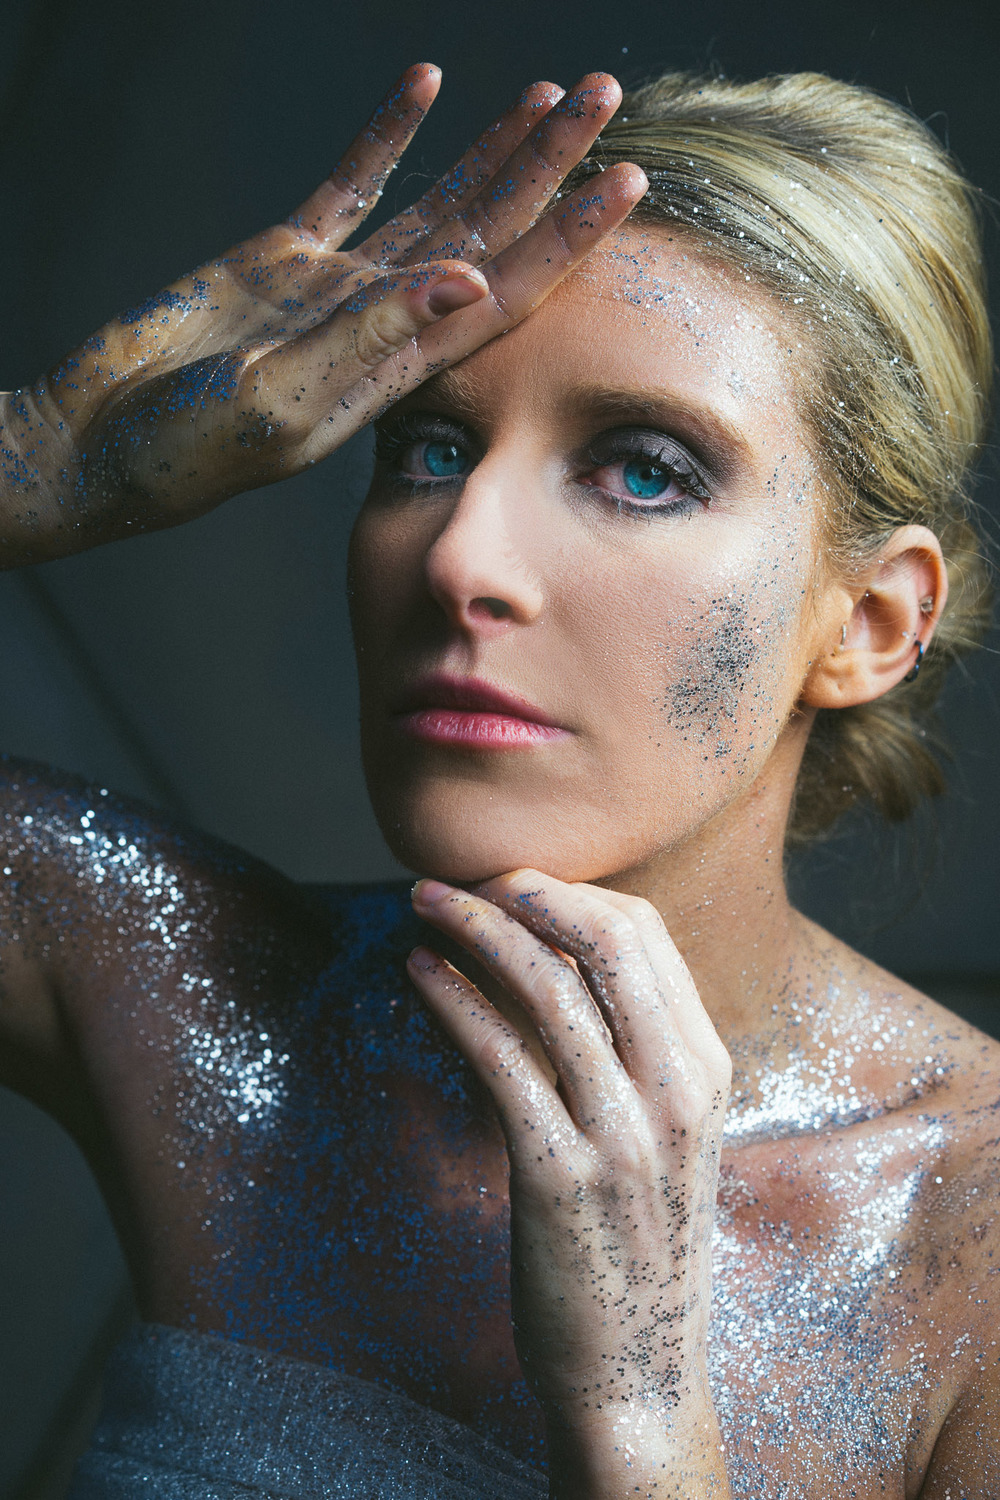 Model: Brittany Campbell  Cameras: Sony A7  Lens:Sonnar T* FE 55mm F1.8 Z